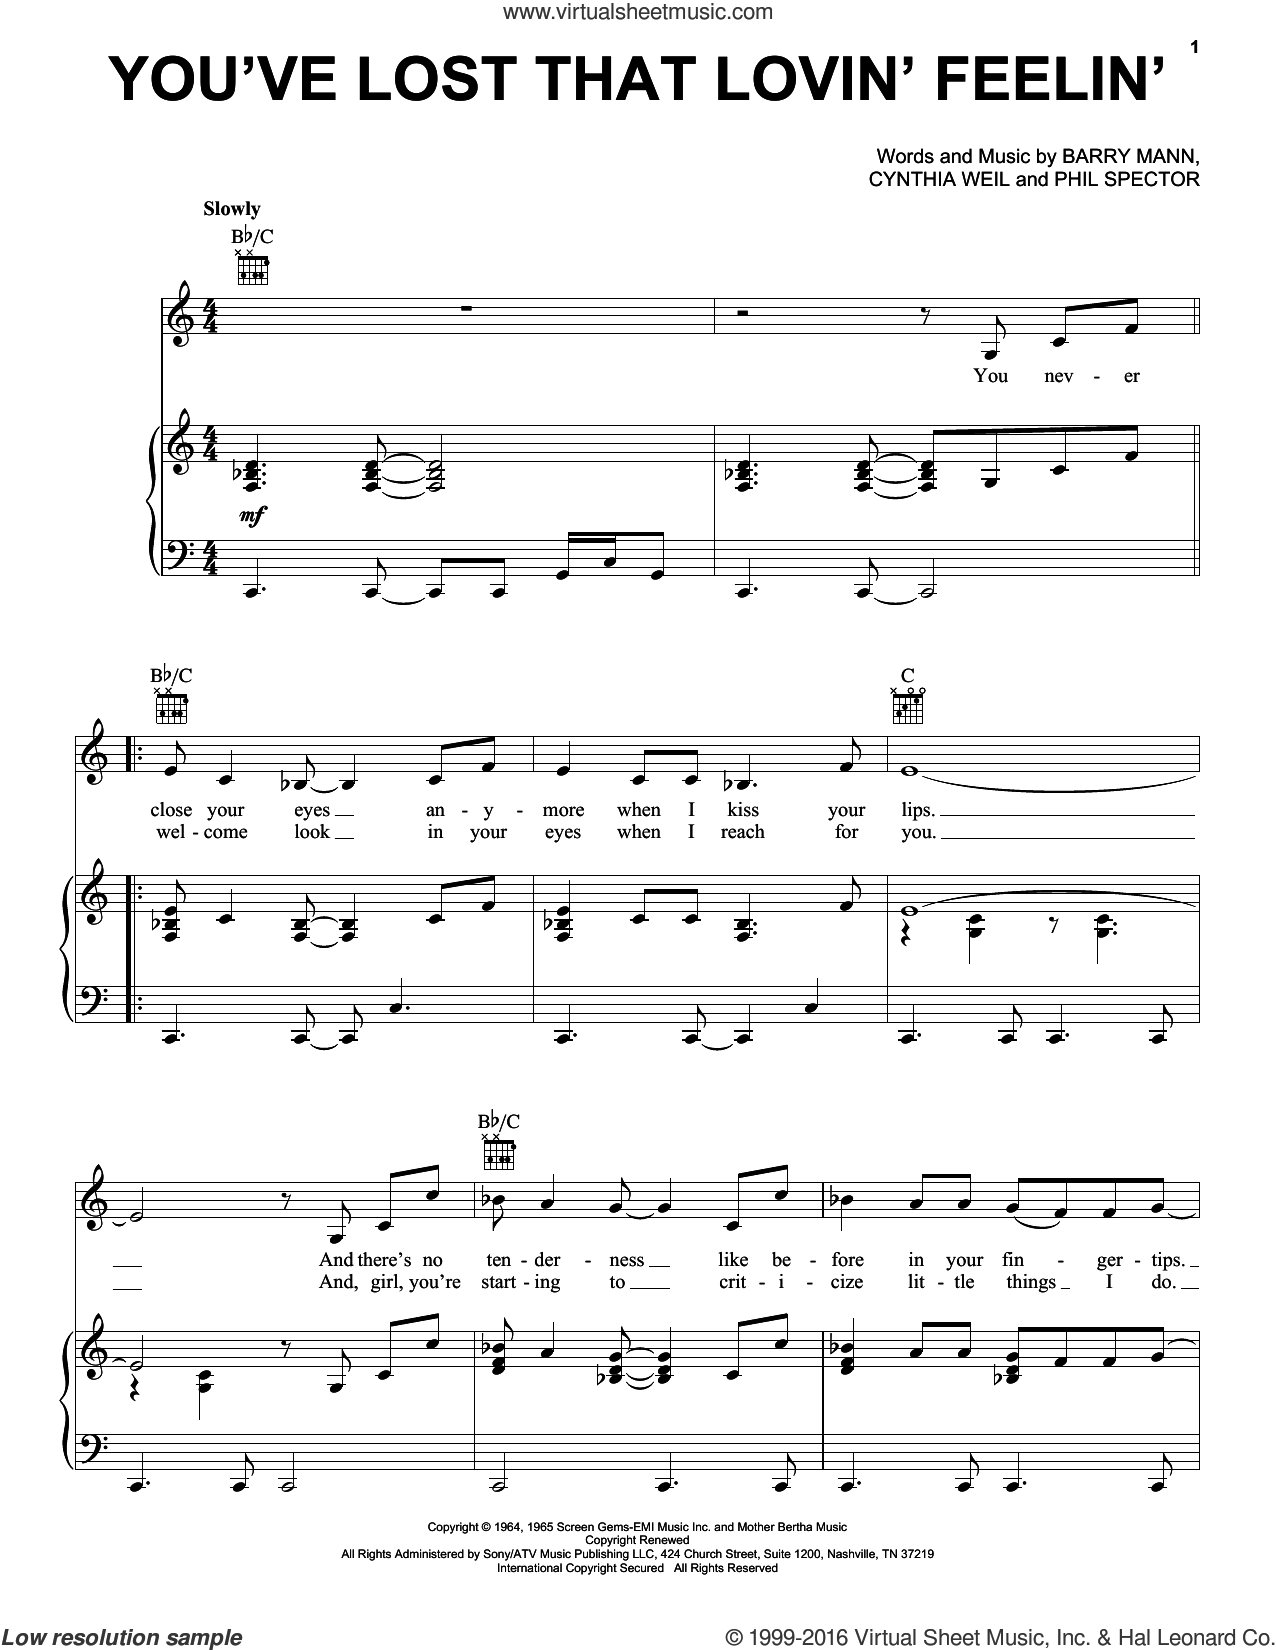 You've Lost That Lovin' Feelin' sheet music for voice, piano or guitar by Cynthia Weil